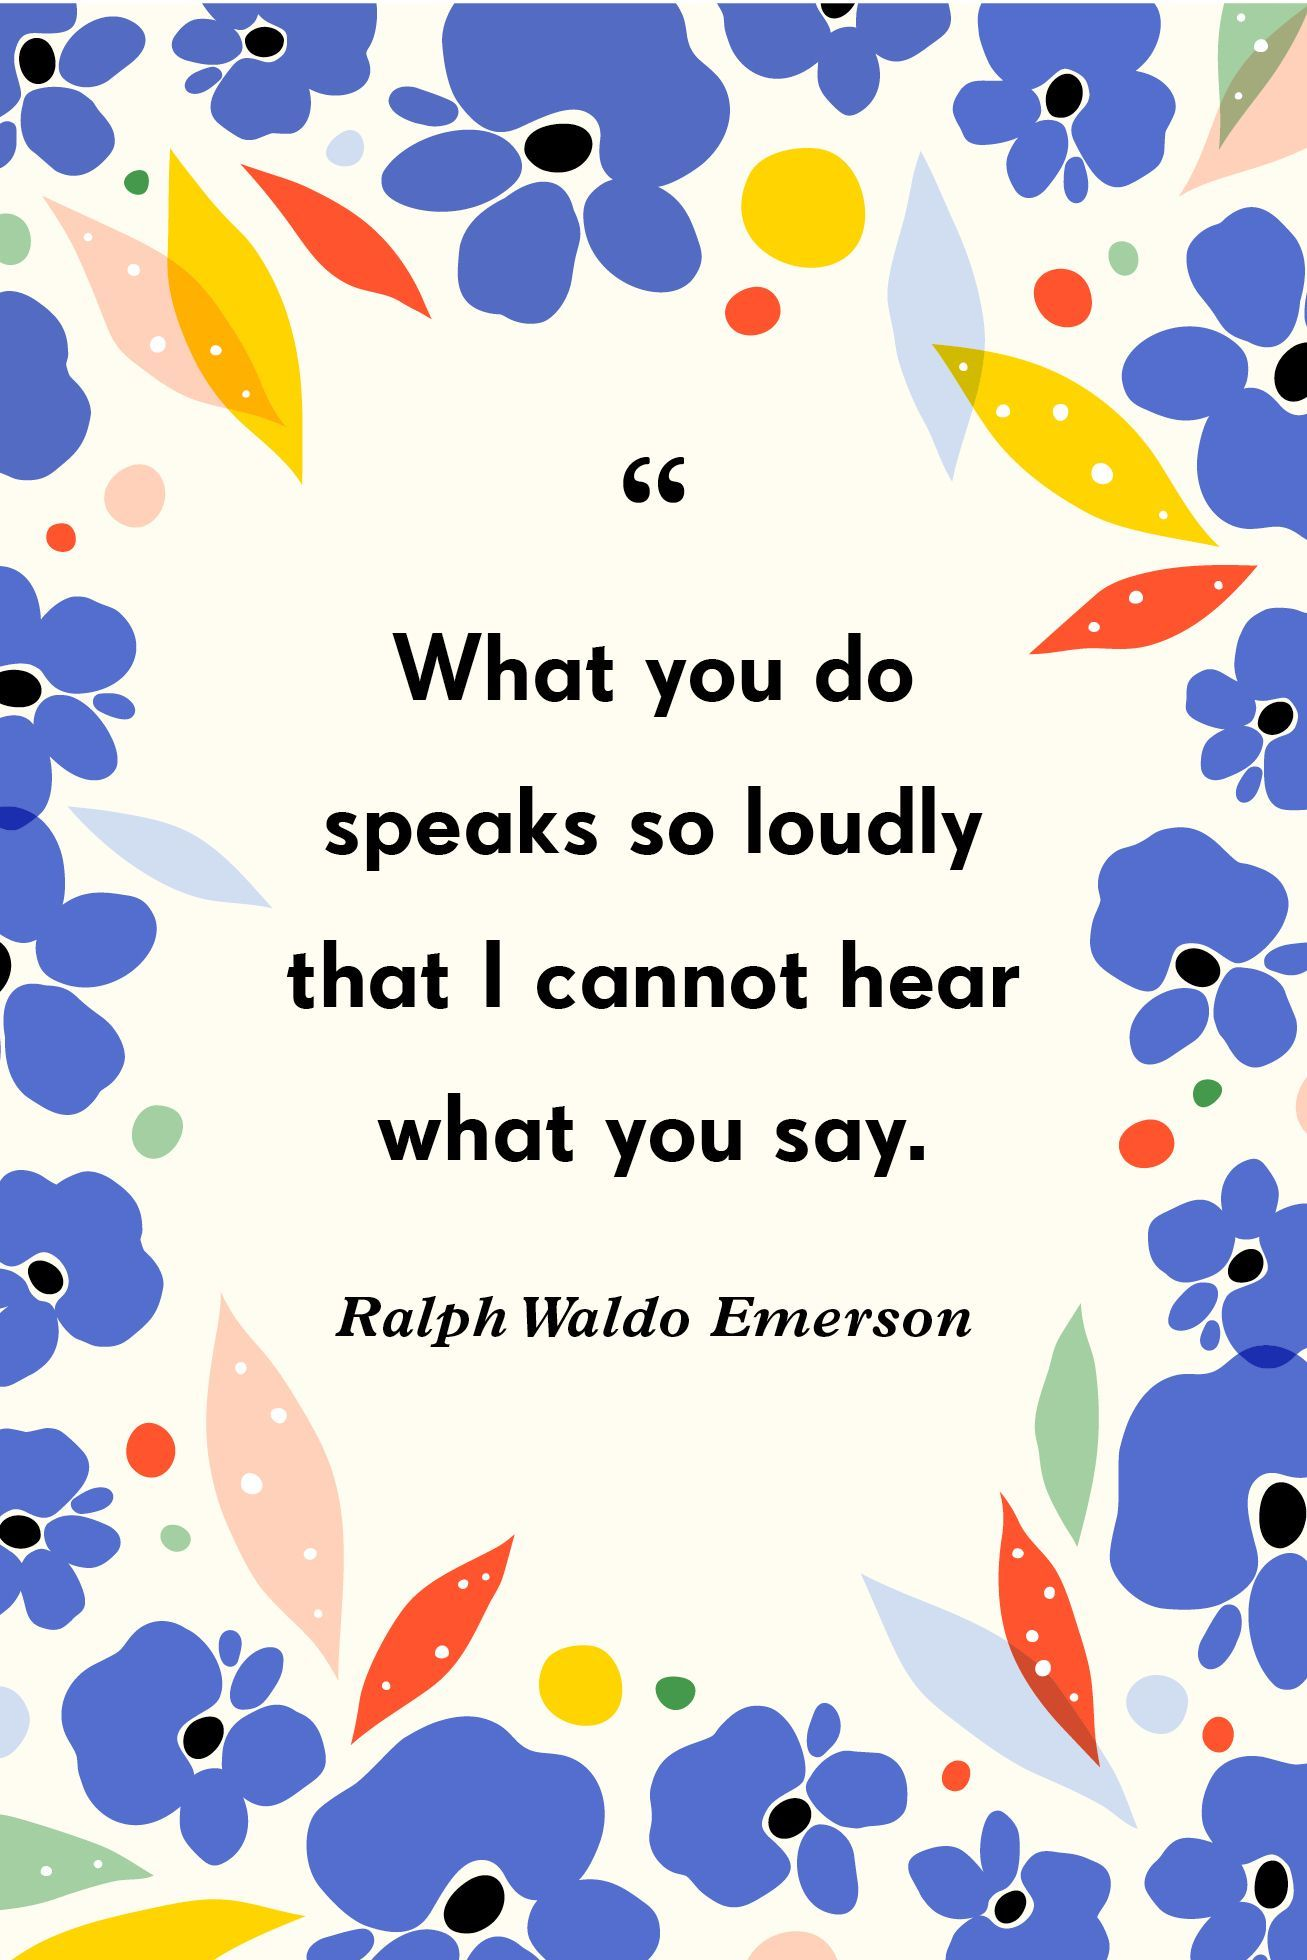 Best Quotes Of All Time To Inspire You Today Best Quotes Of All Time Best Quotes Quotes